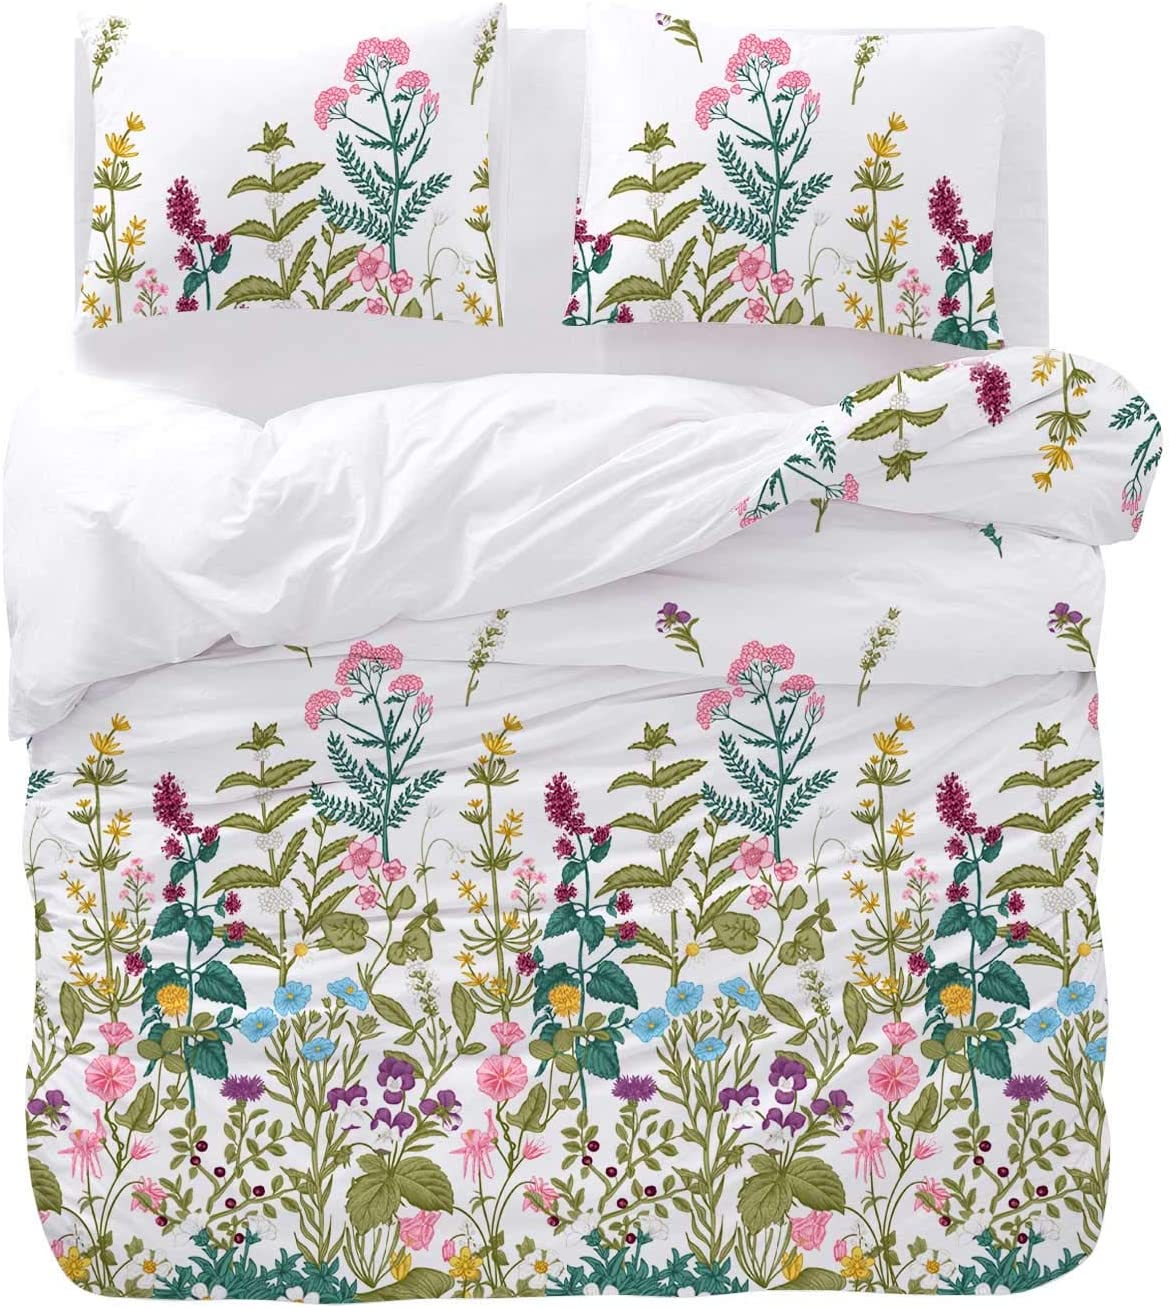 Wake In Cloud - Floral Comforter Set, Colorful Tropical Flowers Tree Leaves Plant Pattern Printed on White, Soft Microfiber Bedding (3pcs, Twin Size)